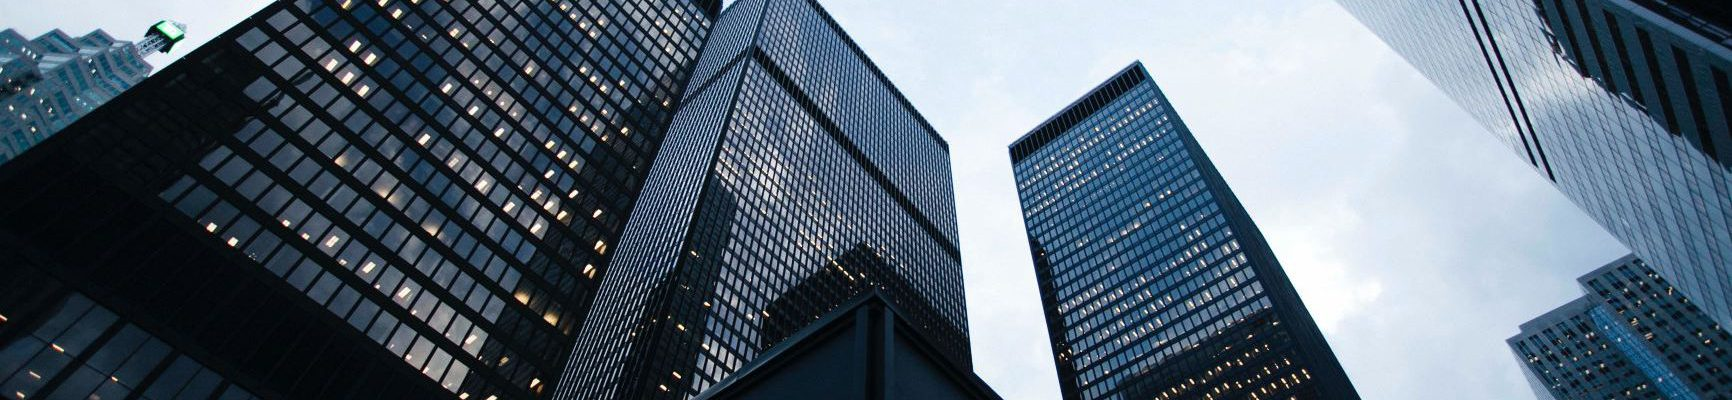 Real estate managed services